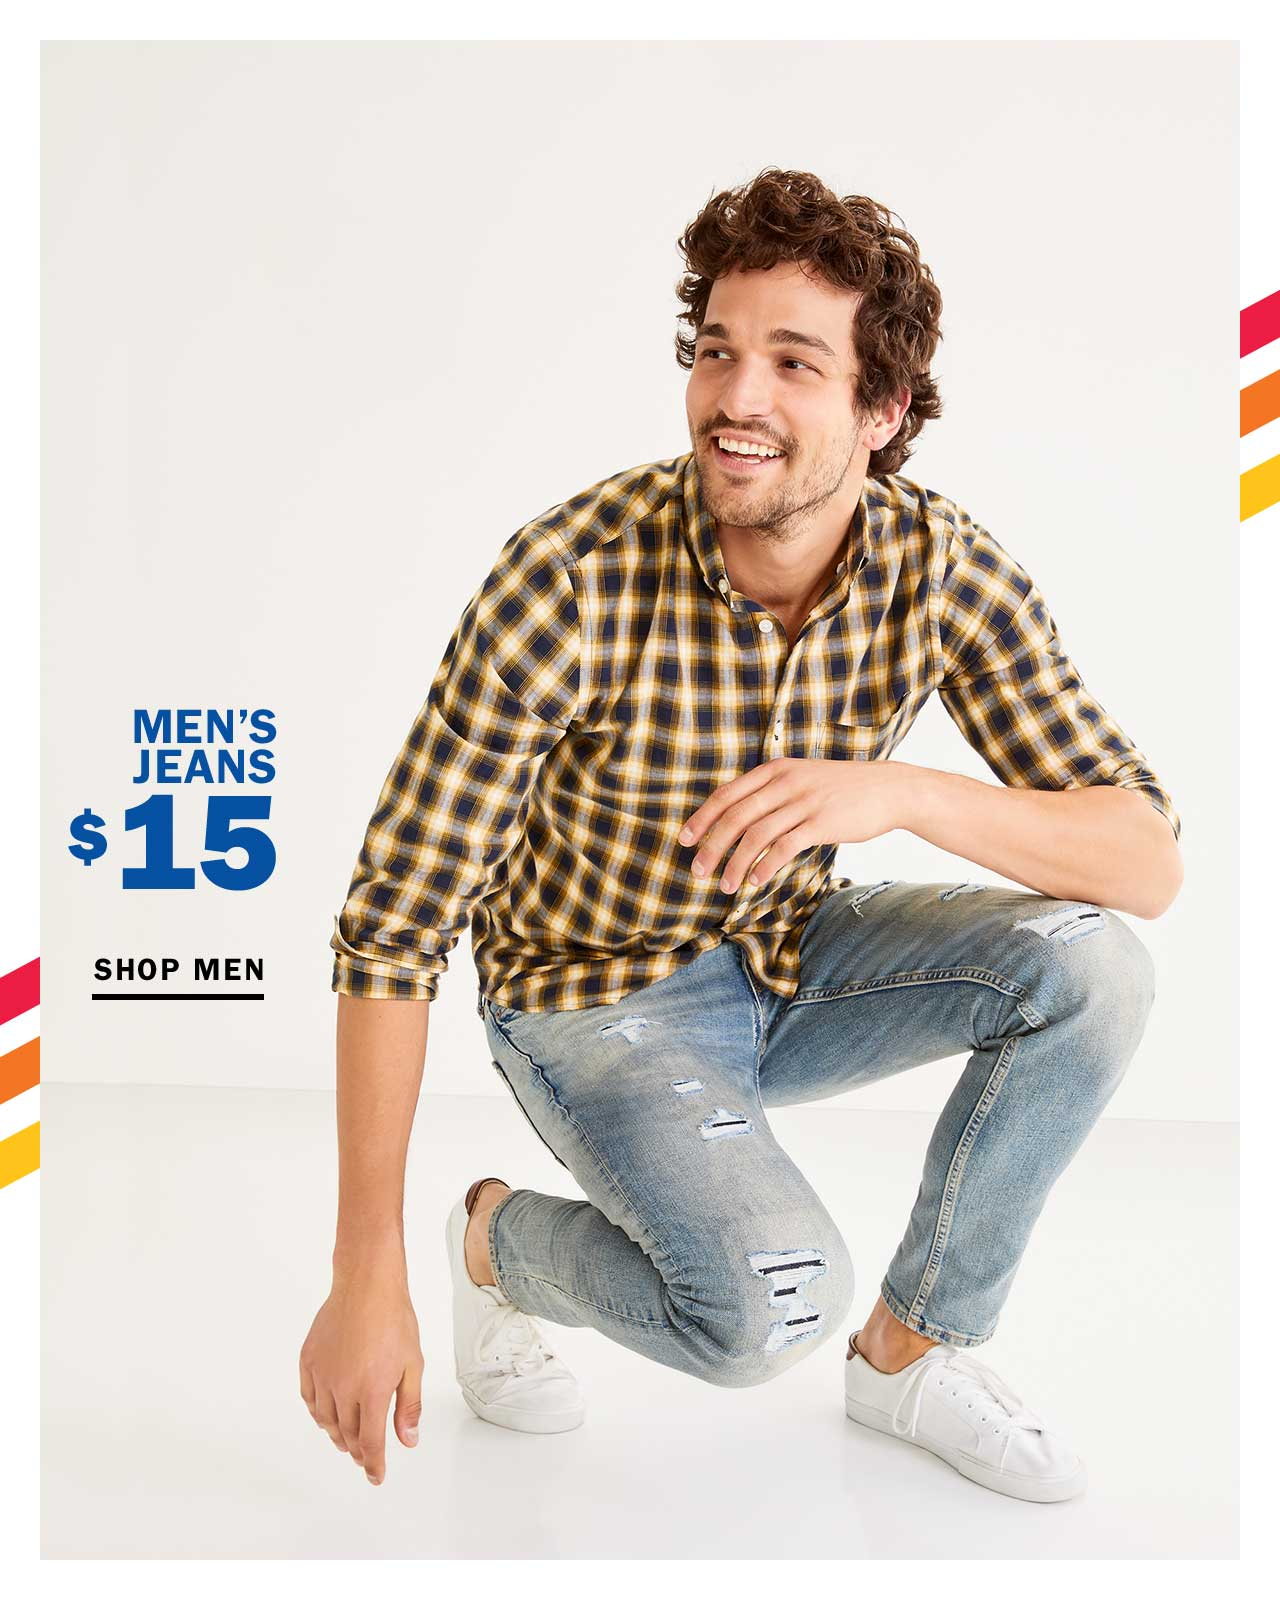 MEN'S JEANS FROM $15 | SHOP MEN